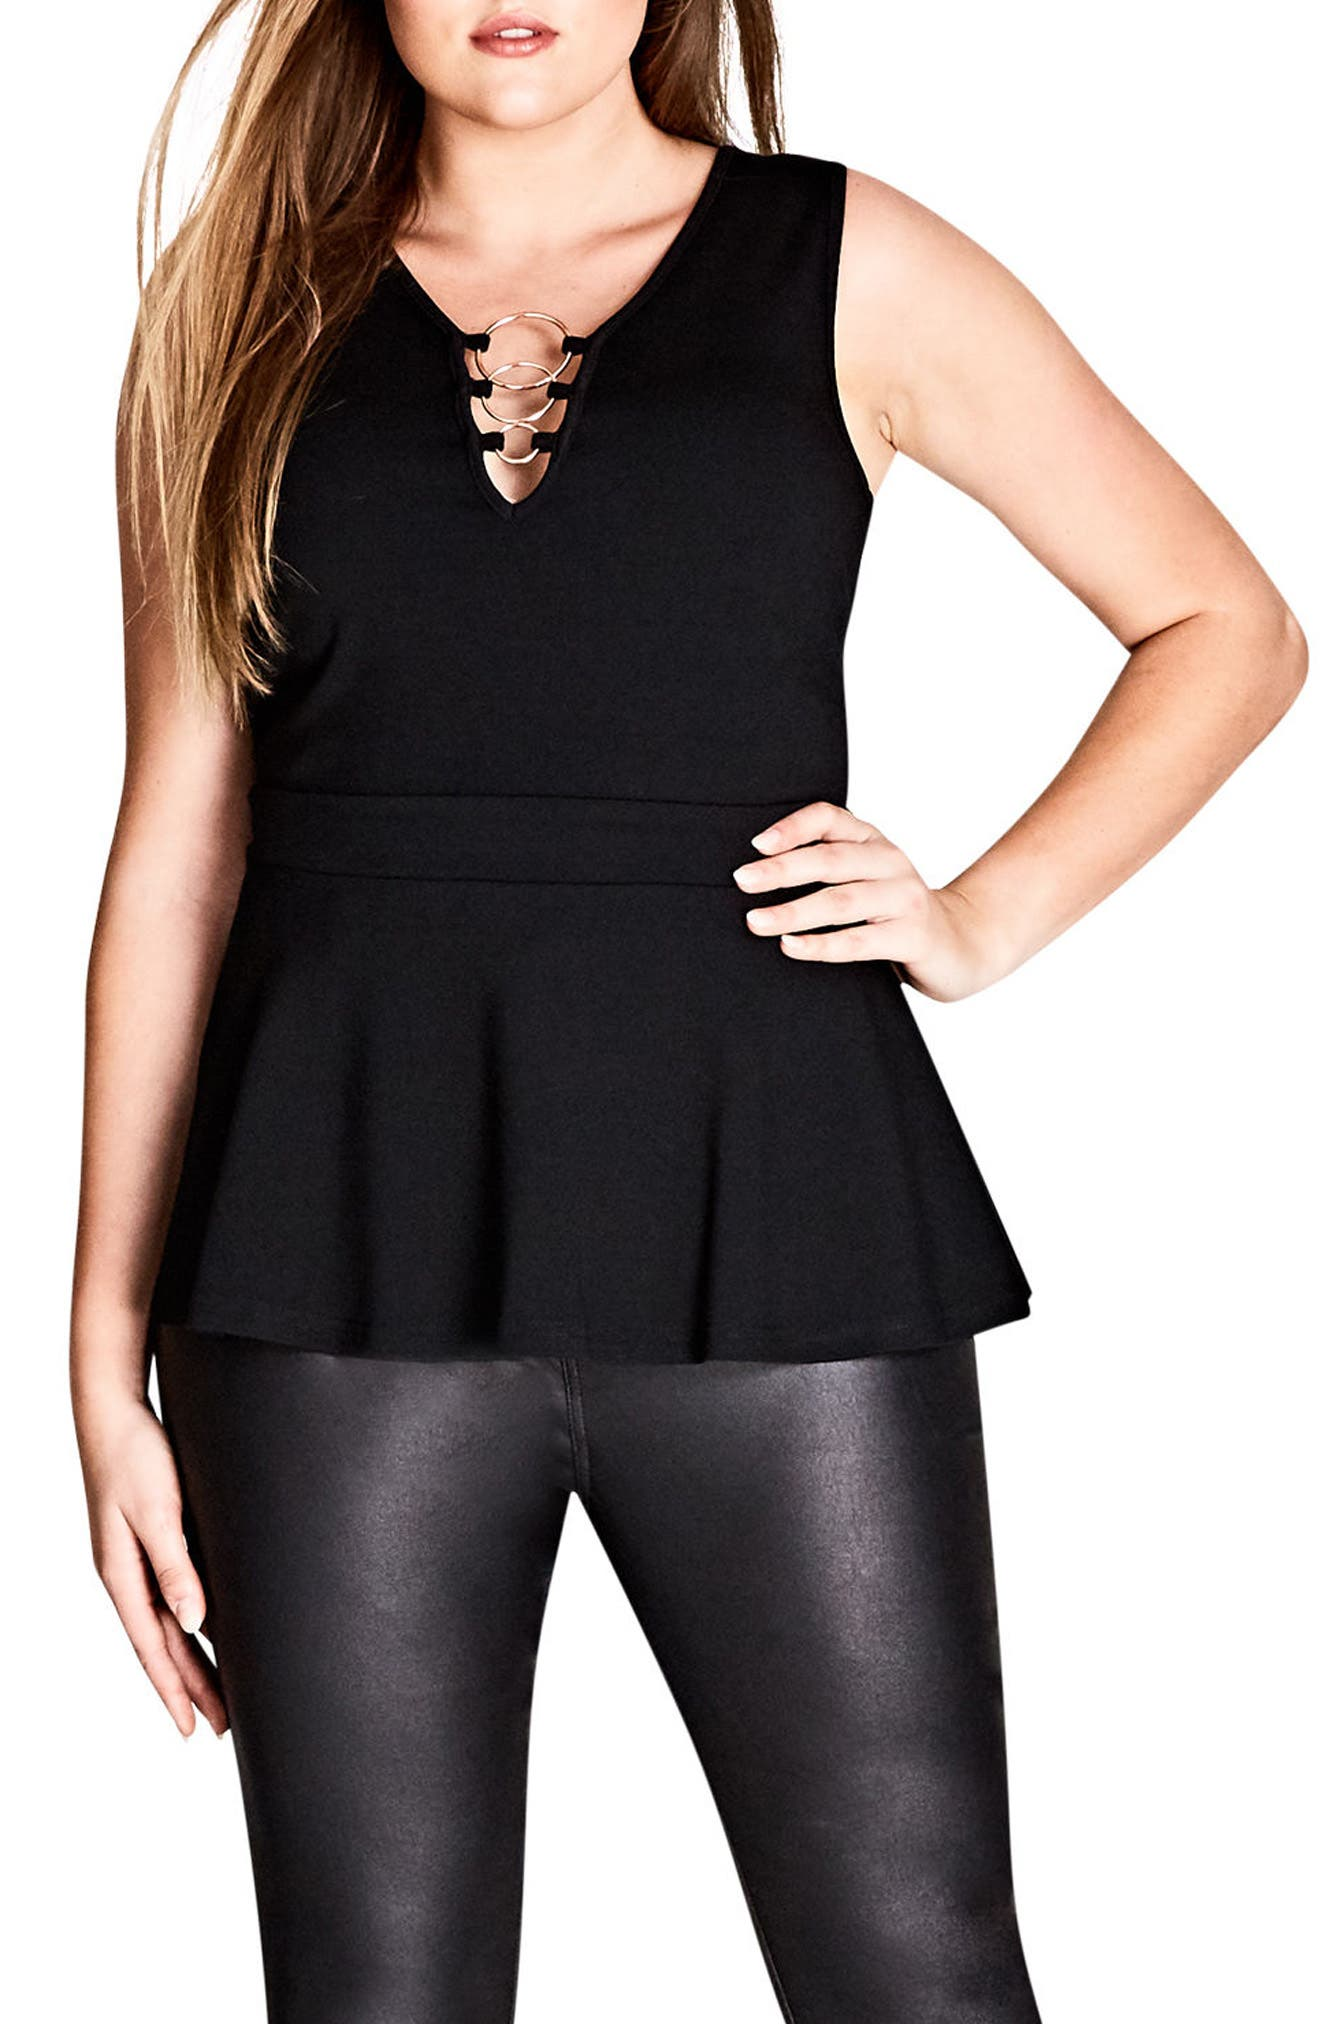 Alternate Image 1 Selected - City Chic Ring Me Up Sleeveless Peplum Top (Plus Size)